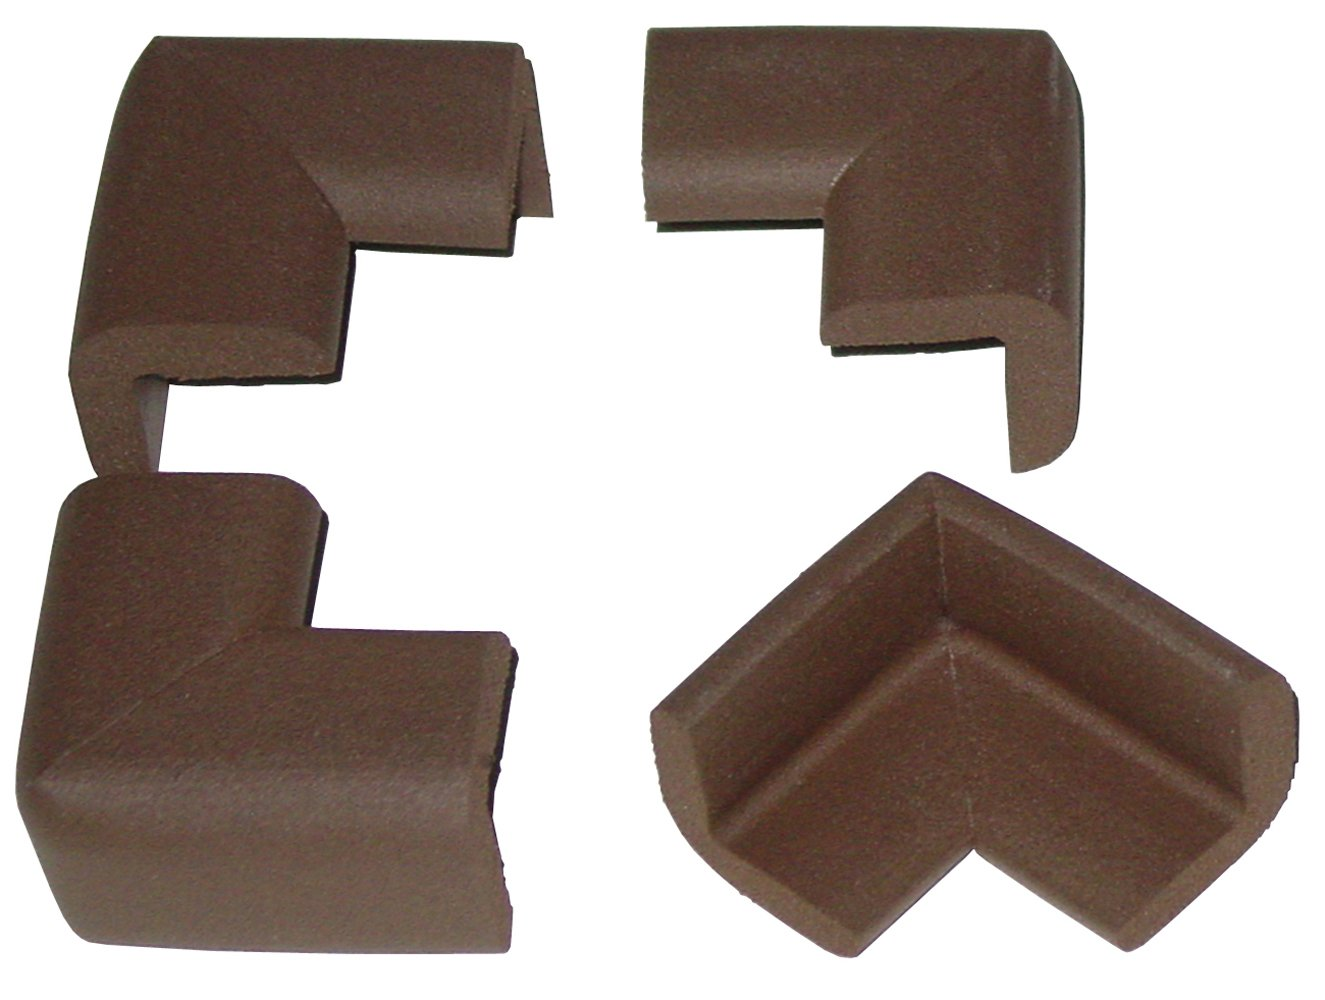 Kidkusion Corner Cushion, Brown, 16-Count